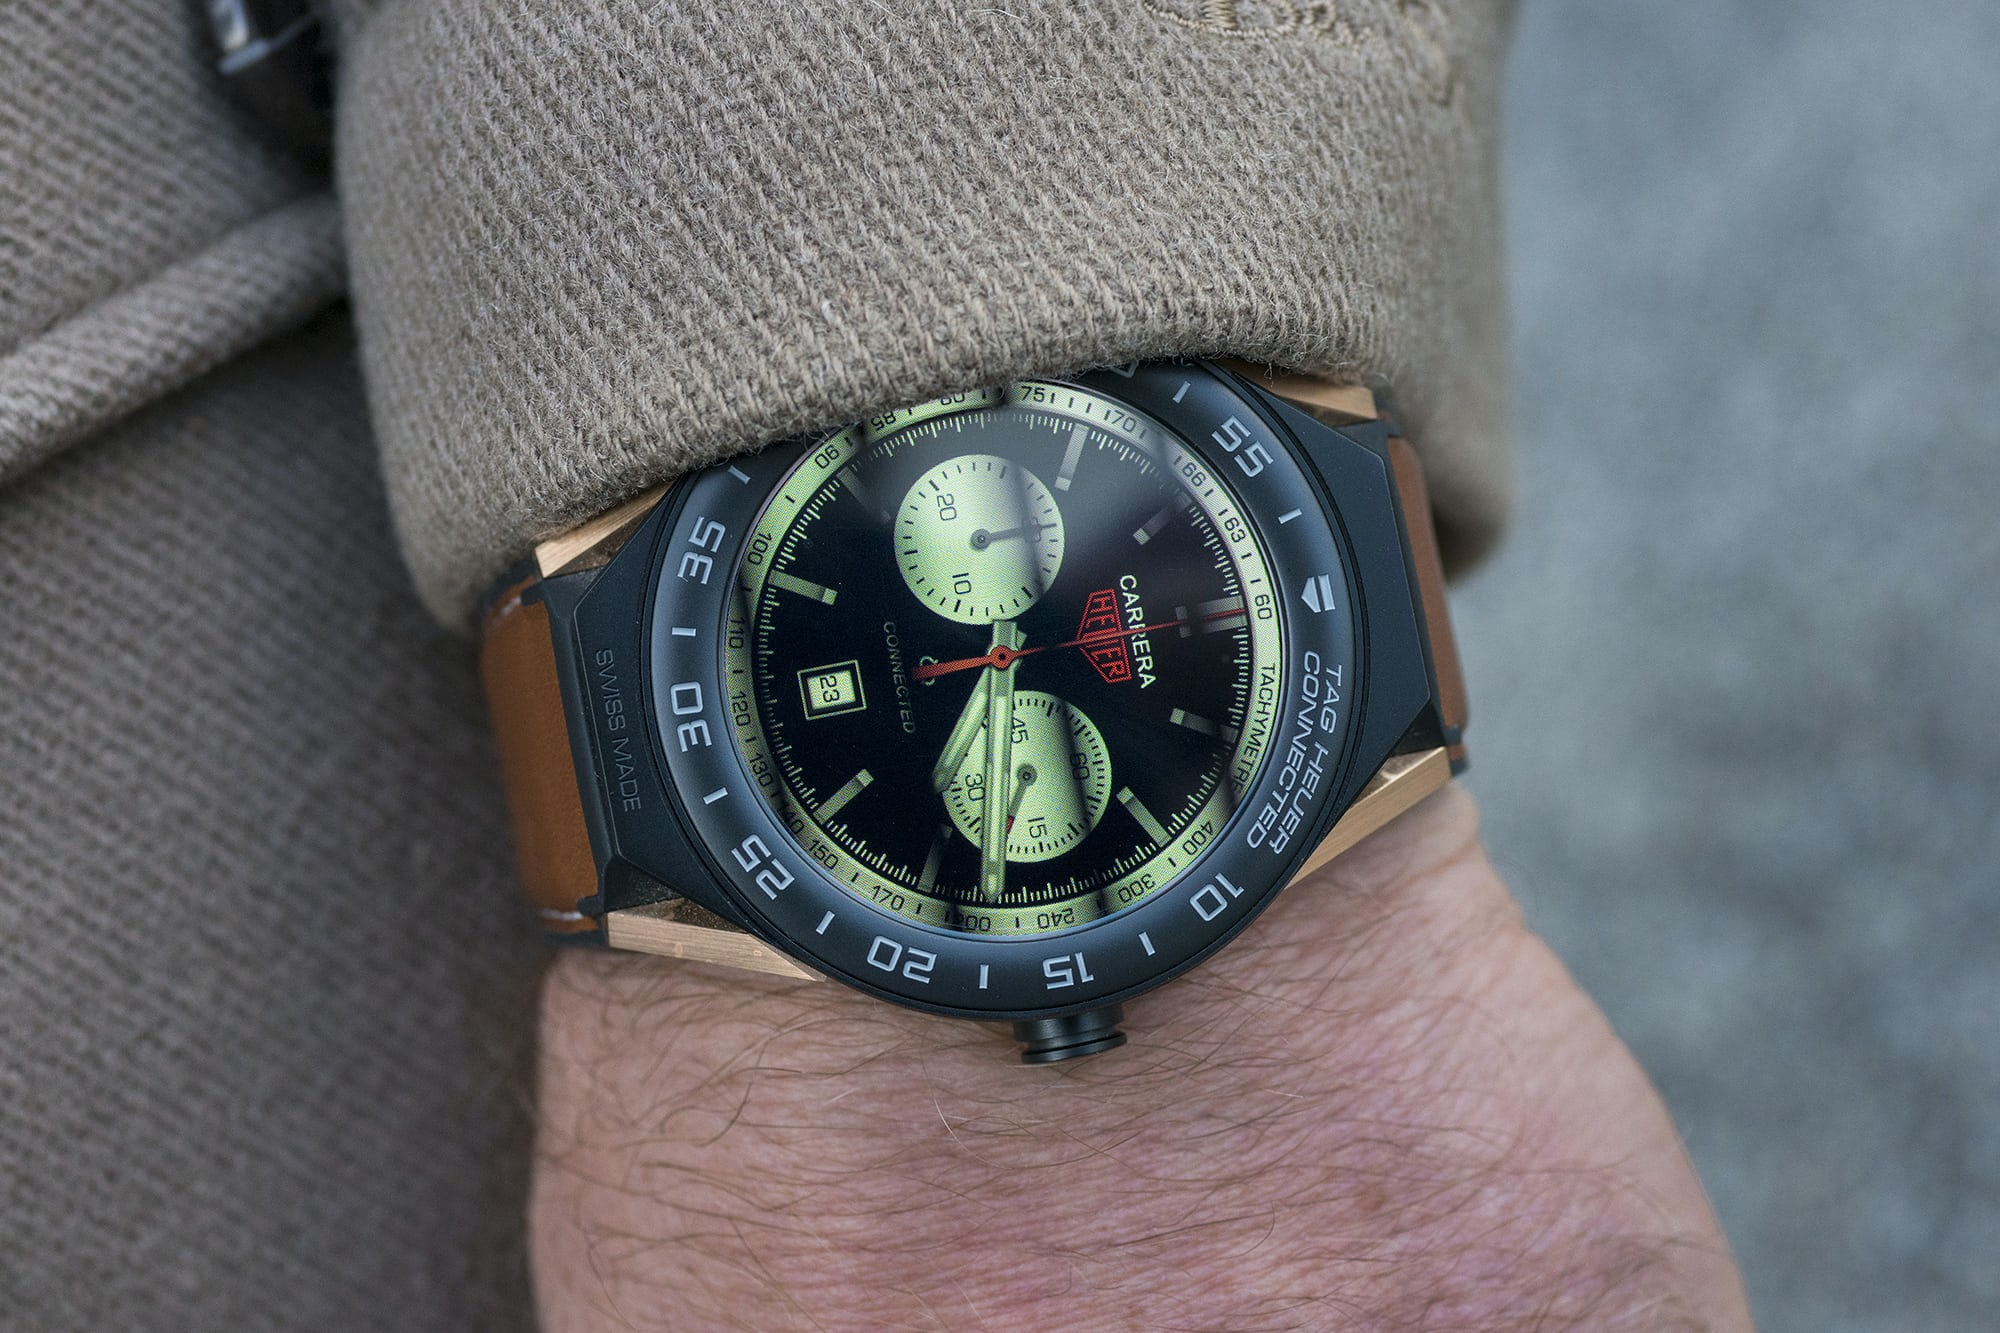 Photo Report: The Fashion And Watches Of Baselworld 2018 Photo Report: The Fashion And Watches Of Baselworld 2018 DSC00874 copy